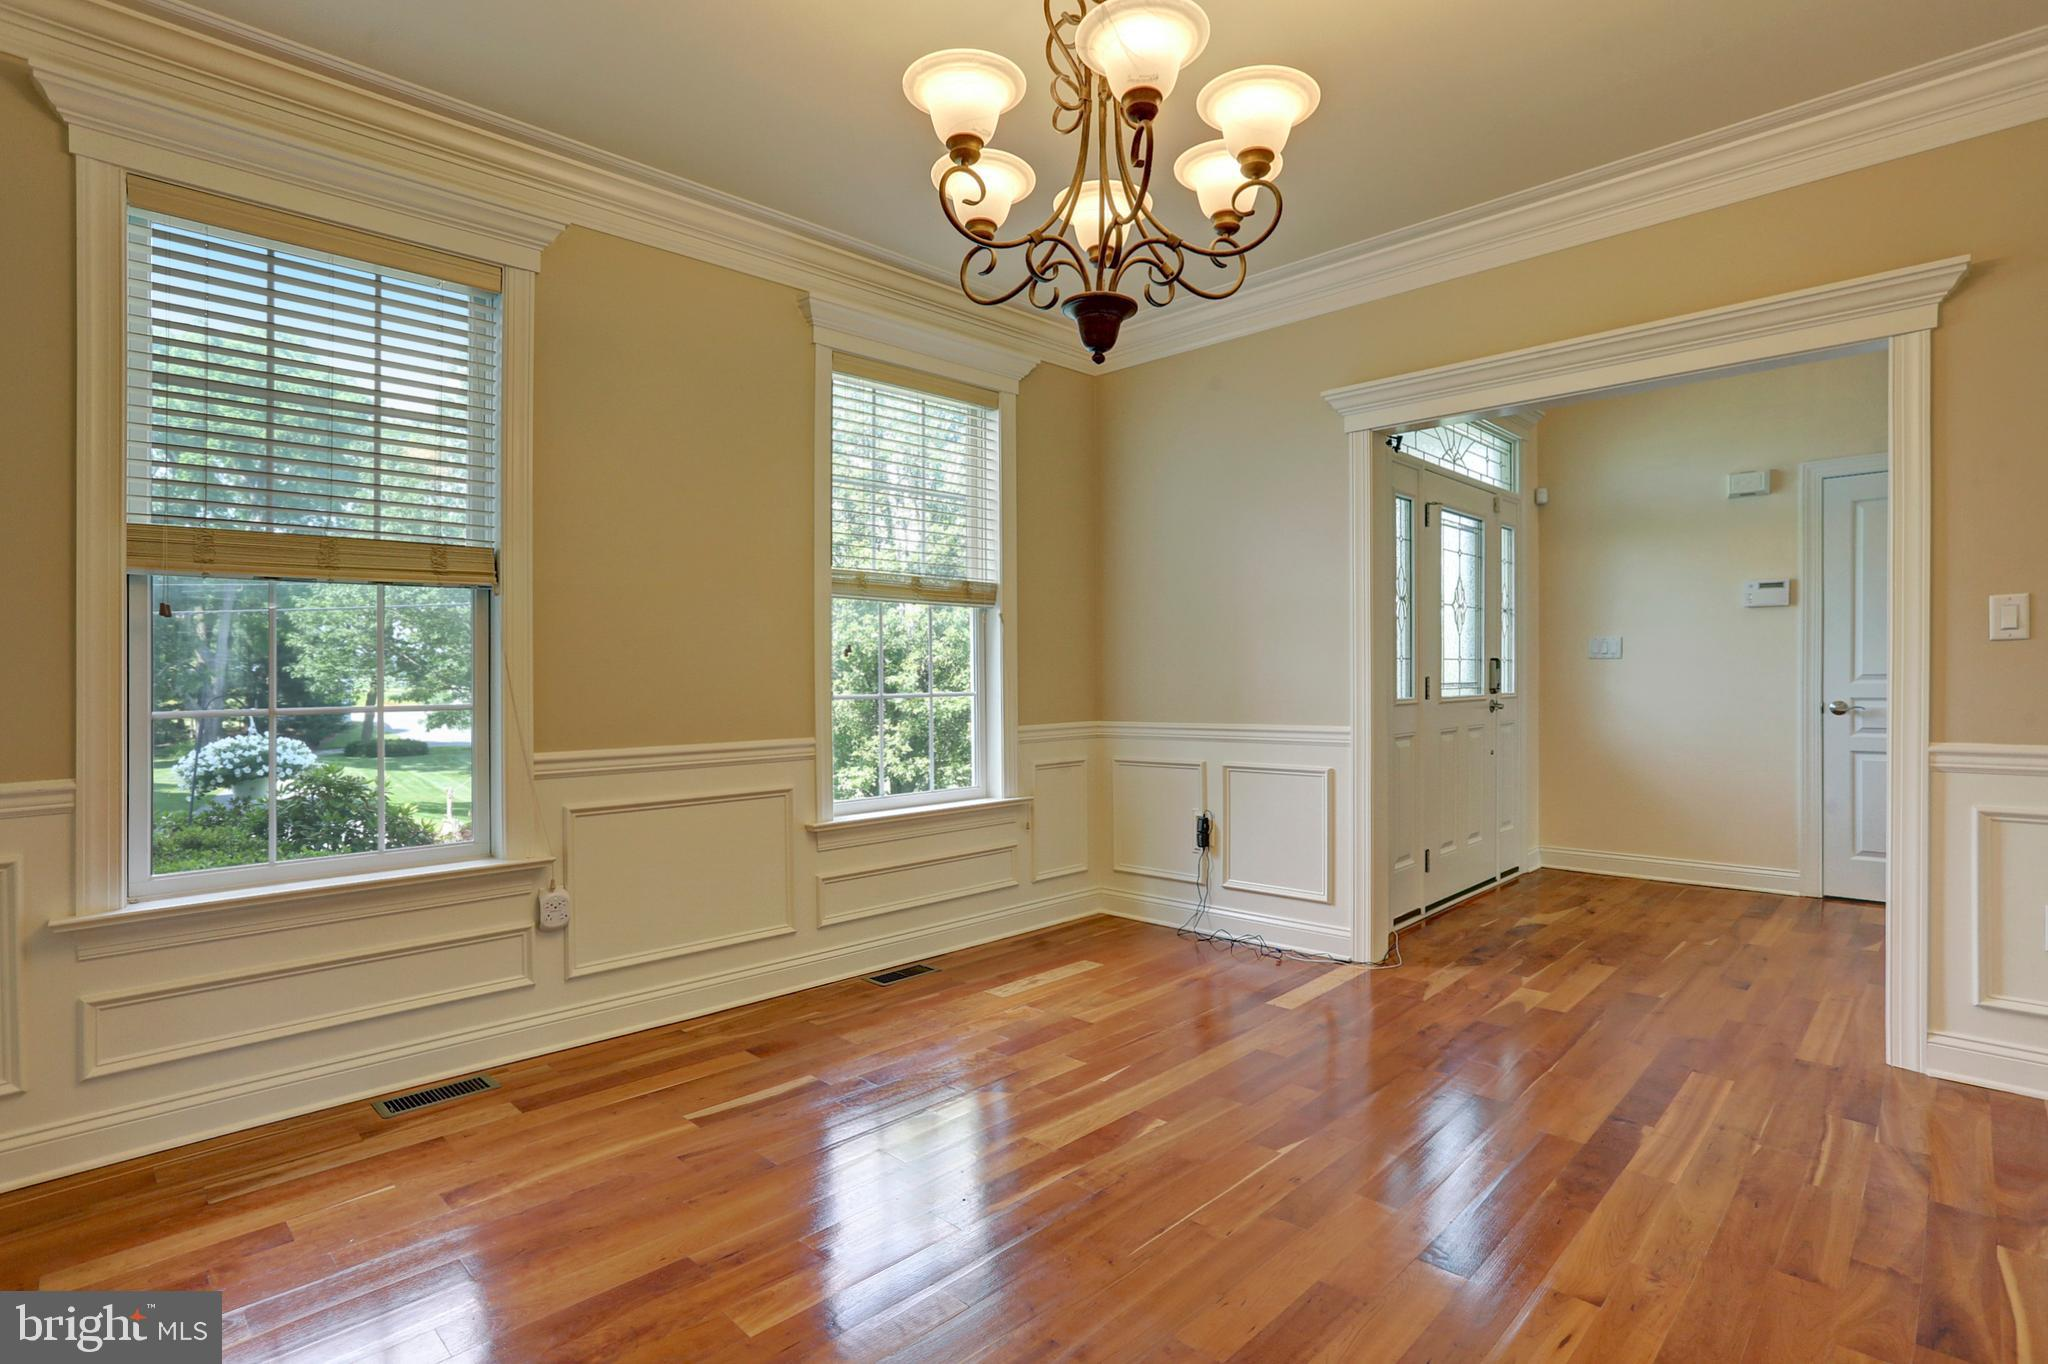 Cherry Wood Floors in the Formal Dining Room